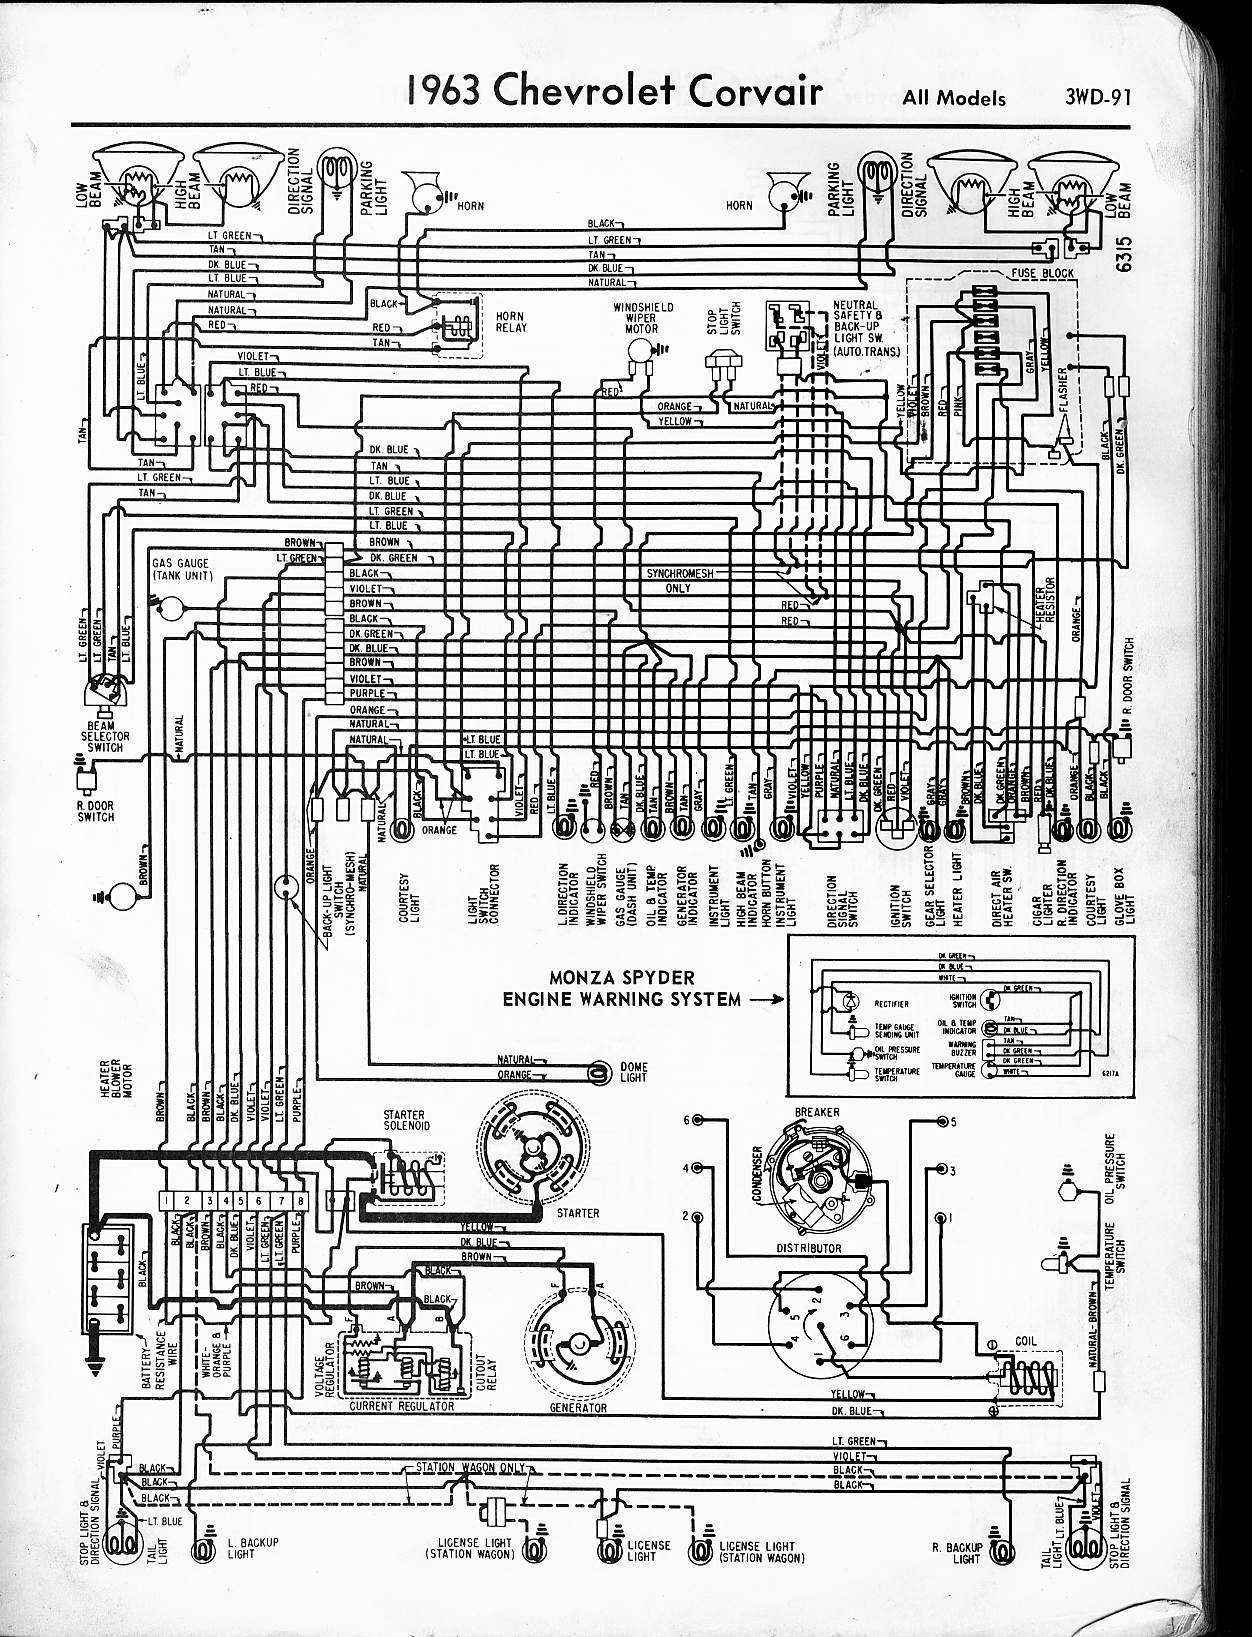 57 65 chevy wiring diagrams rh oldcarmanualproject com 1964 Chevy Nova  Wiring Diagram 1964 Chevy Nova